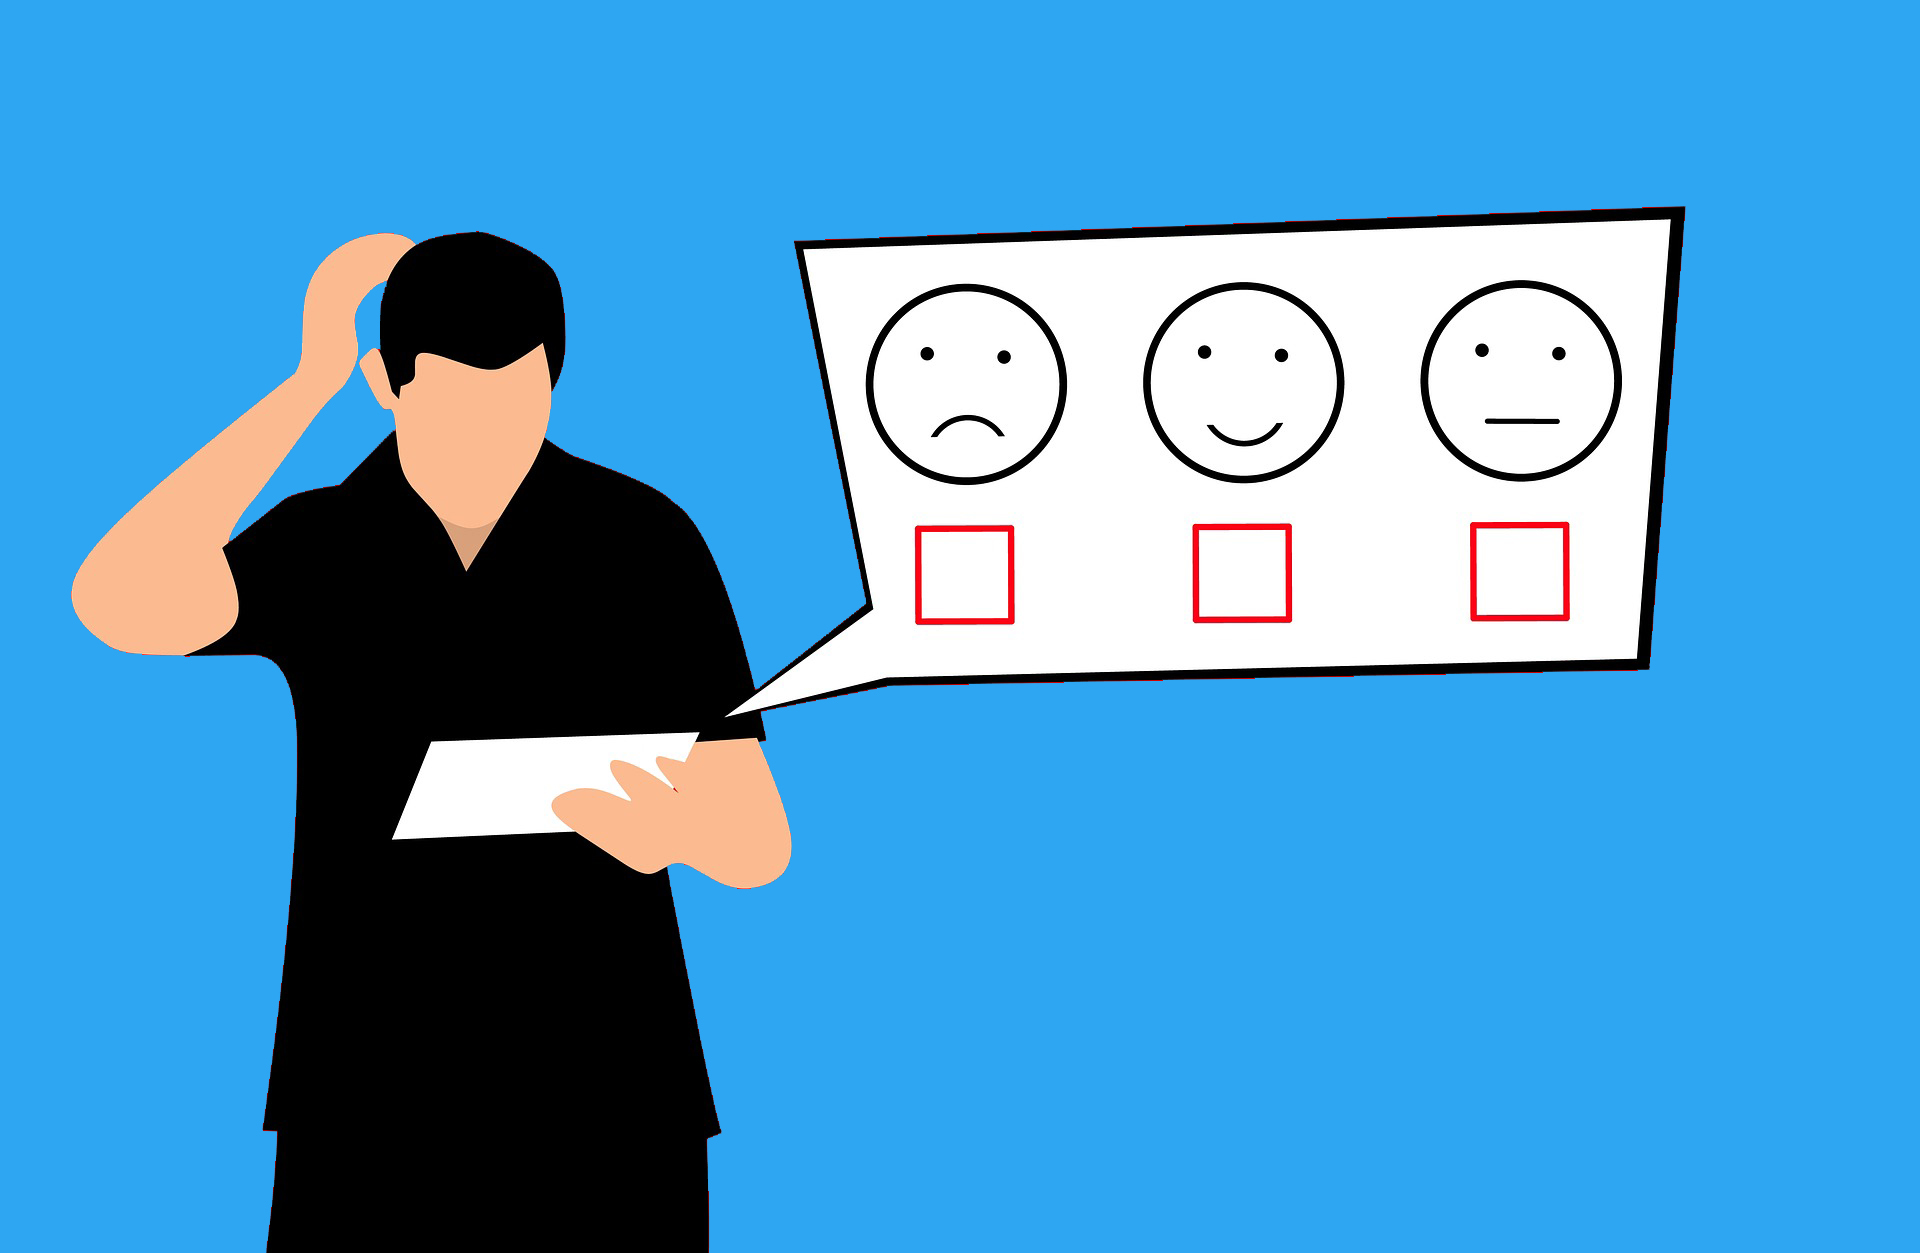 cartoon man scratching his head looking at a smiley face, nuetral face, and frowny face signifying the types of nps scores